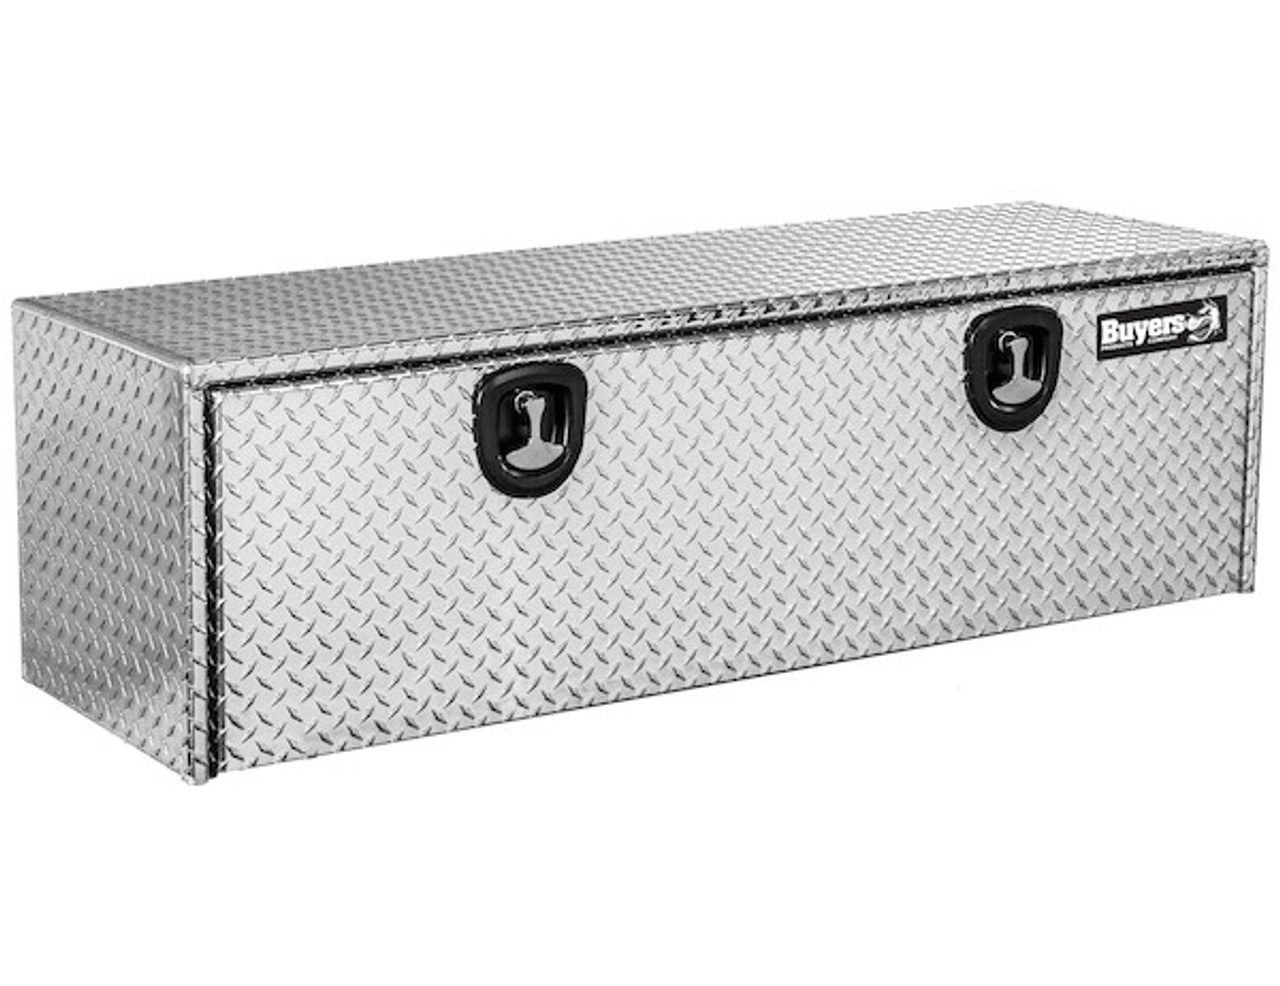 "1705145 BUYERS PRODUCTS DIAMOND TREAD ALUMINUM UNDERBODY TRUCK TOOLBOX 24""HX24""DX60""W"